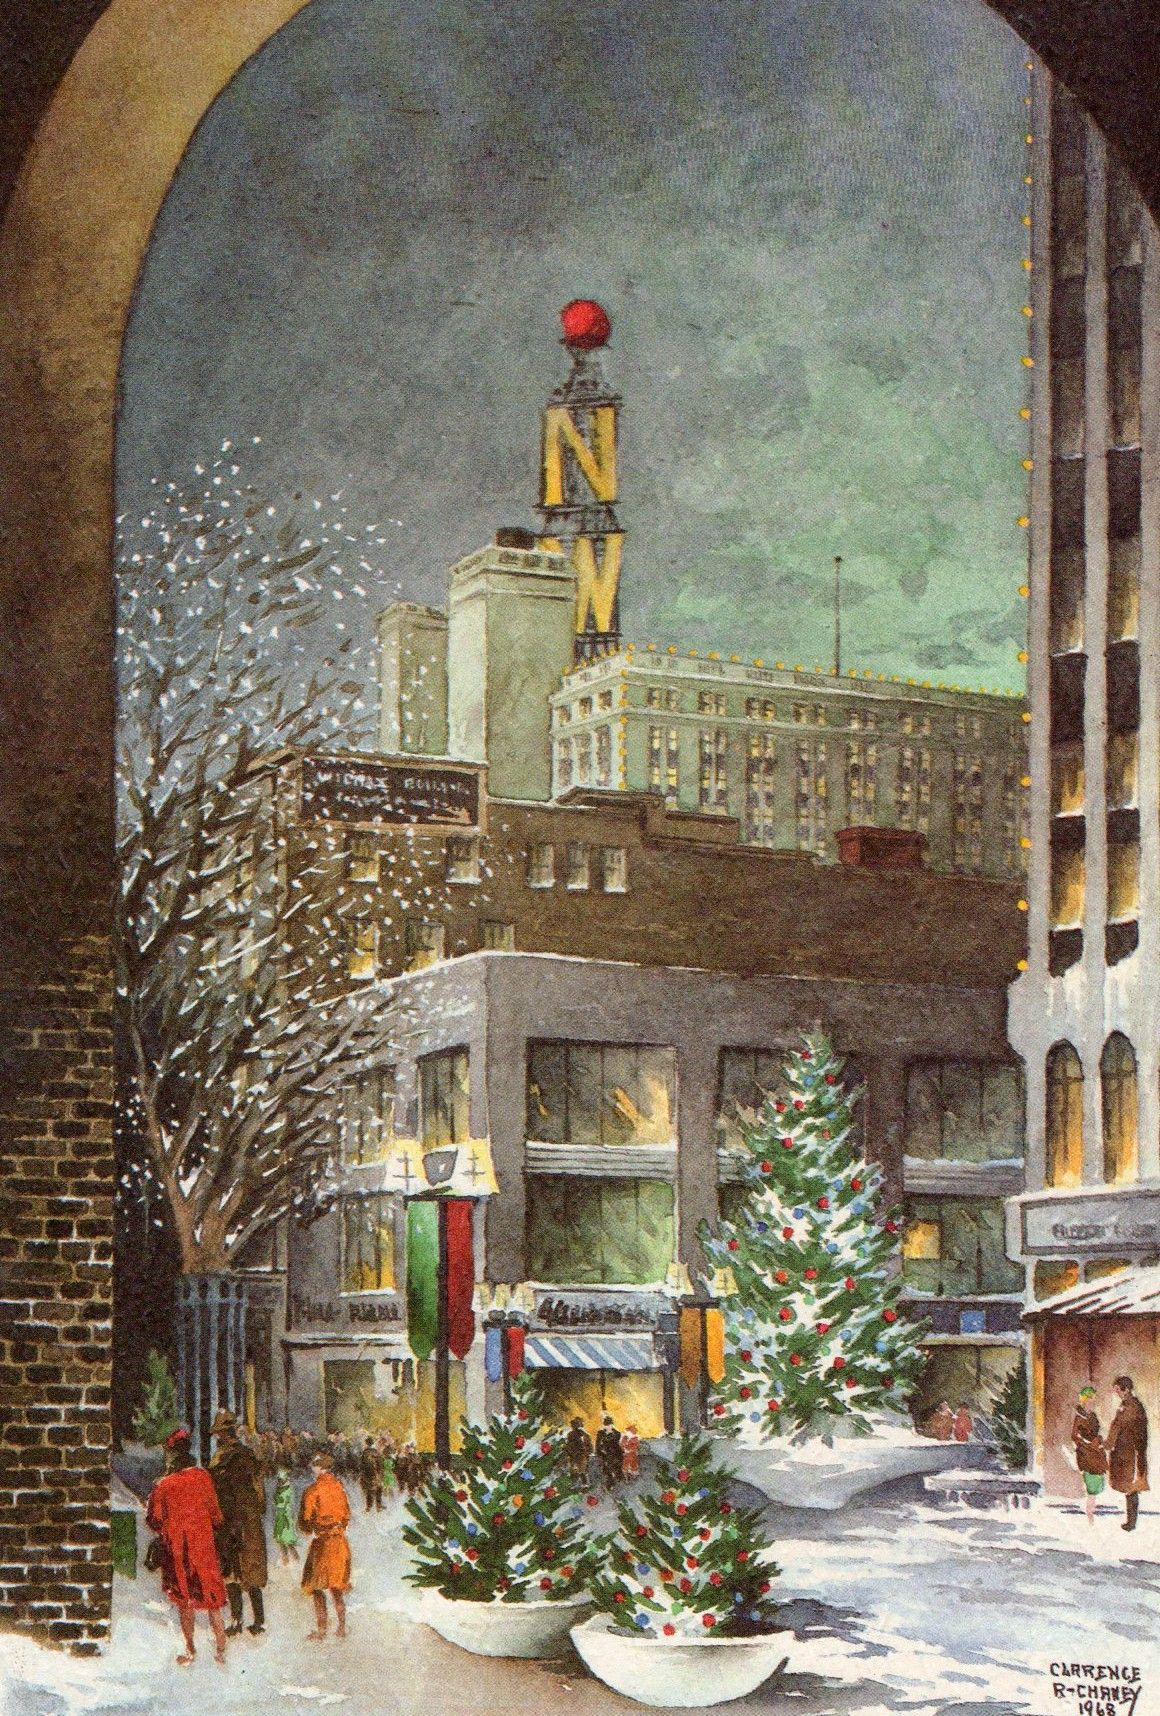 Christmas in downtown minneapolis 1968 image scanned by